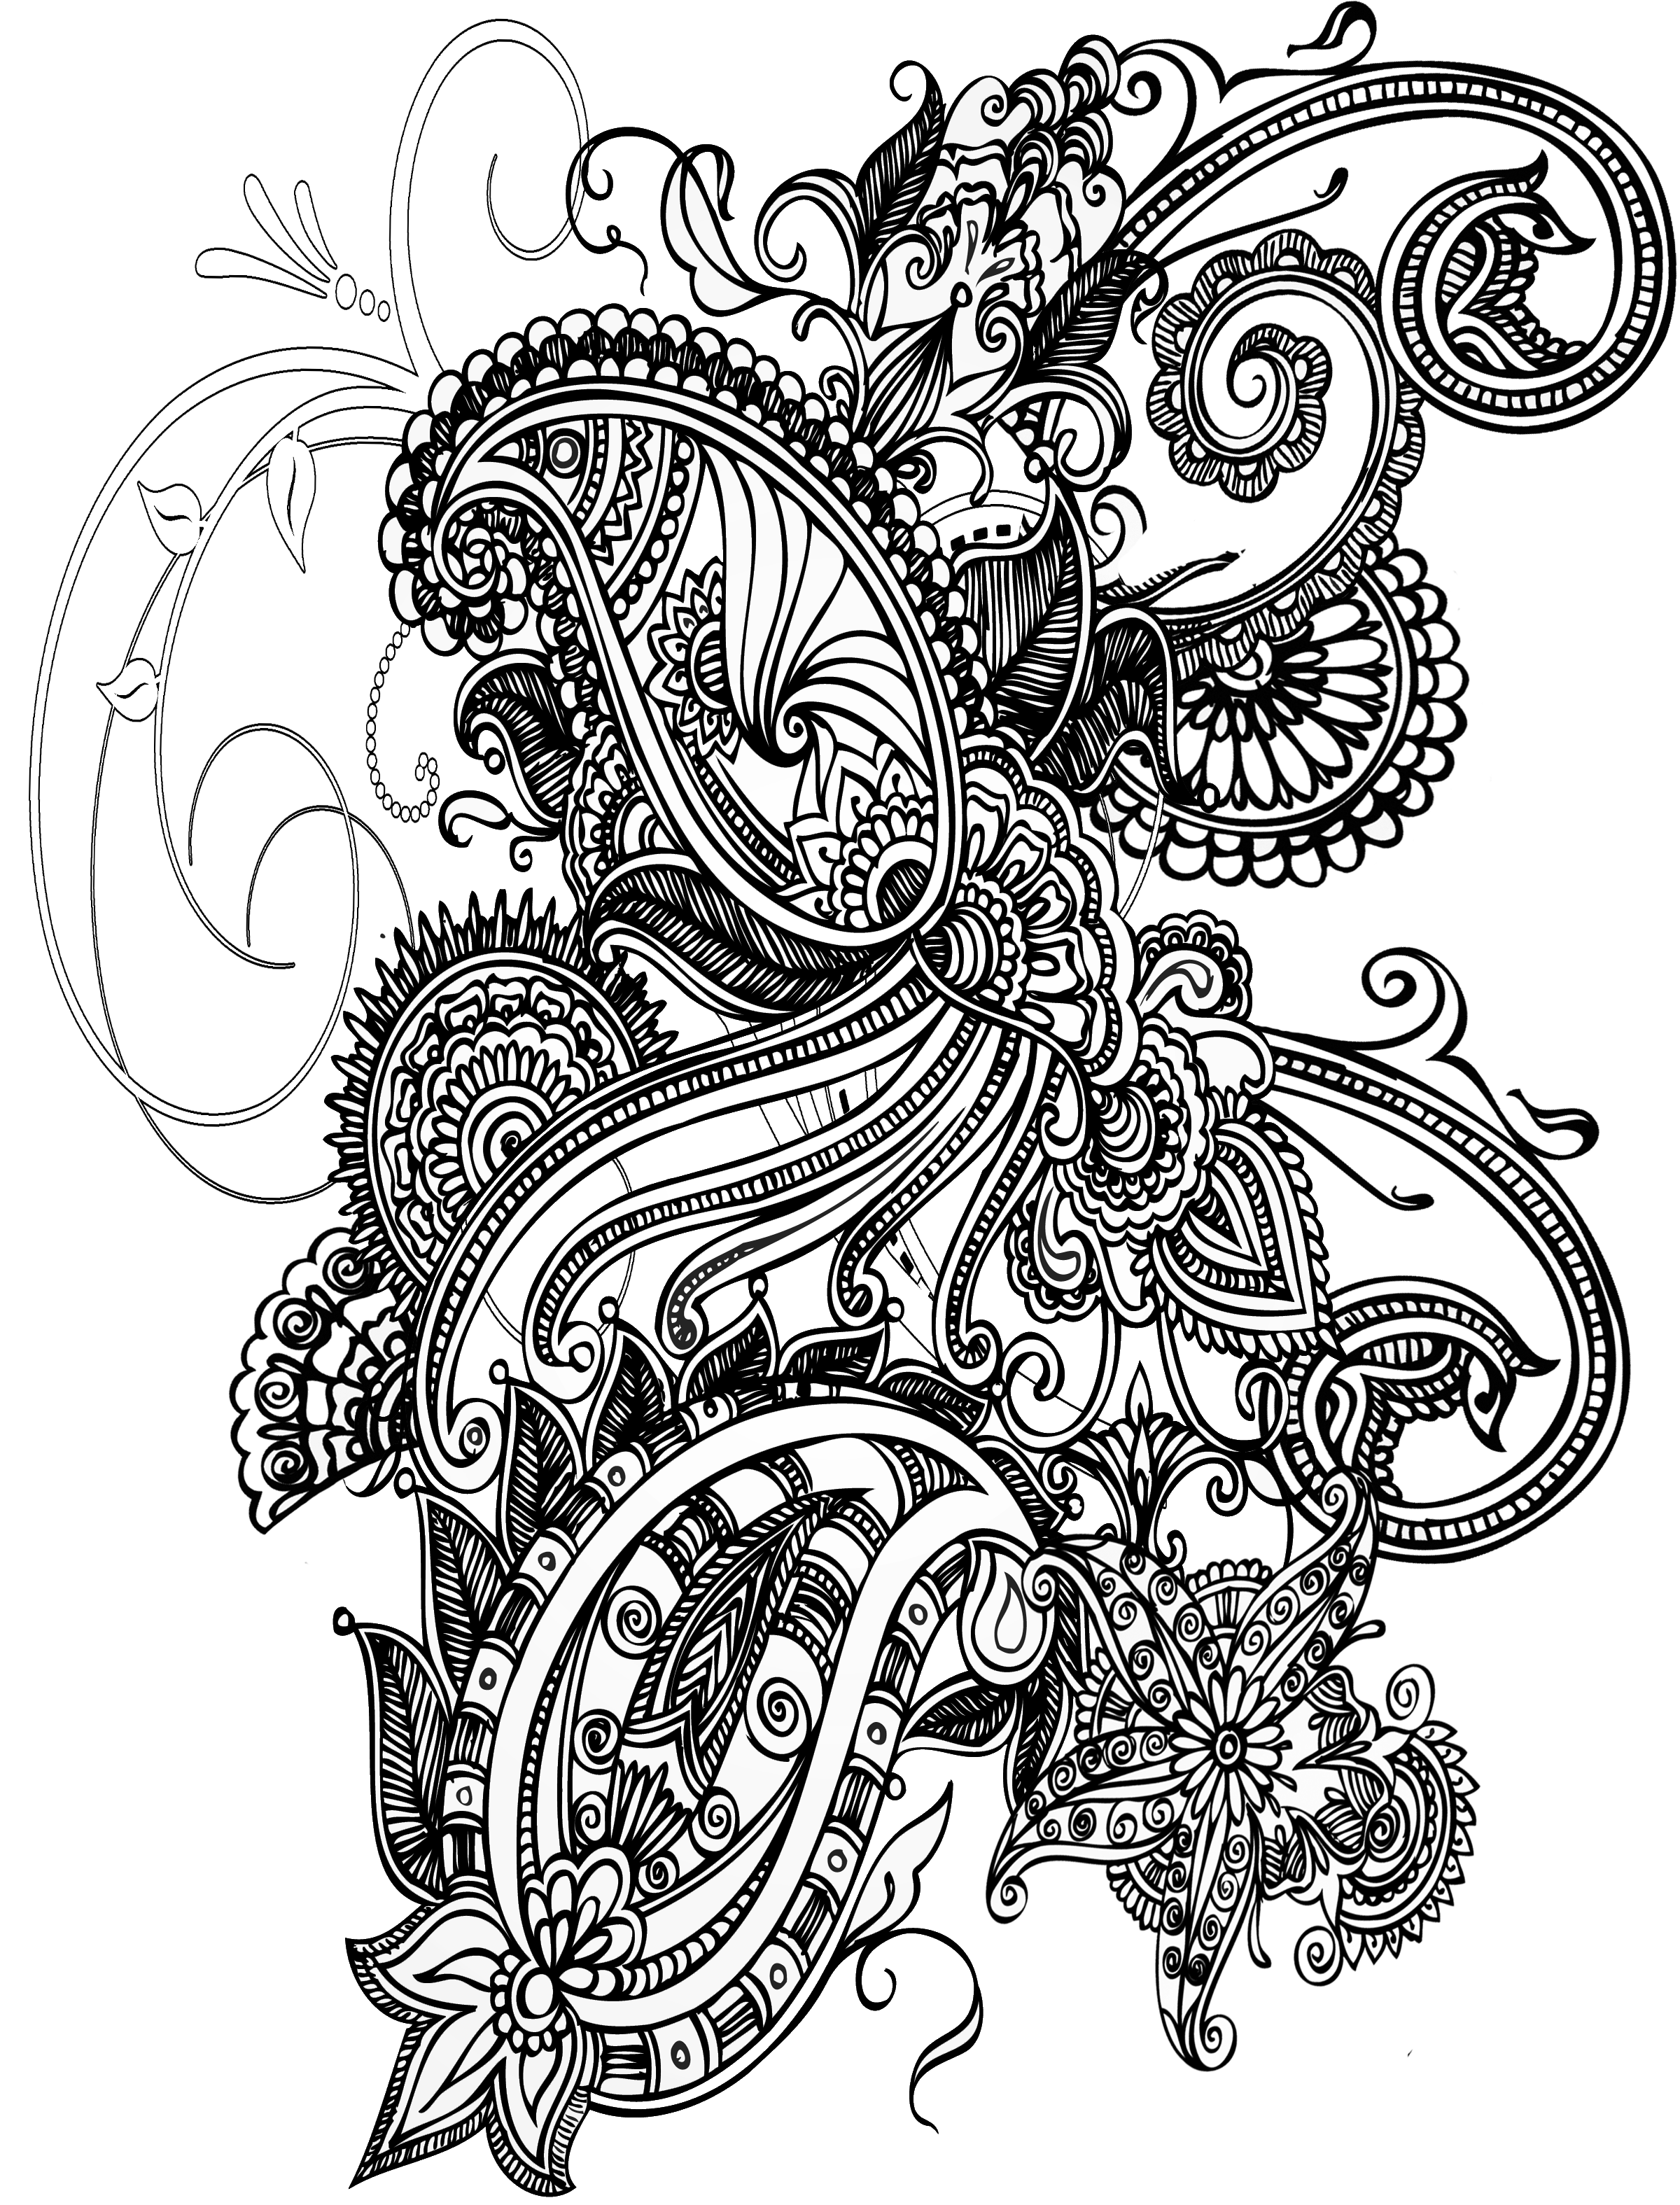 Colorist Heaven Amember Plr Of The Month Club Colourist Coloring Pages Fantasy Images